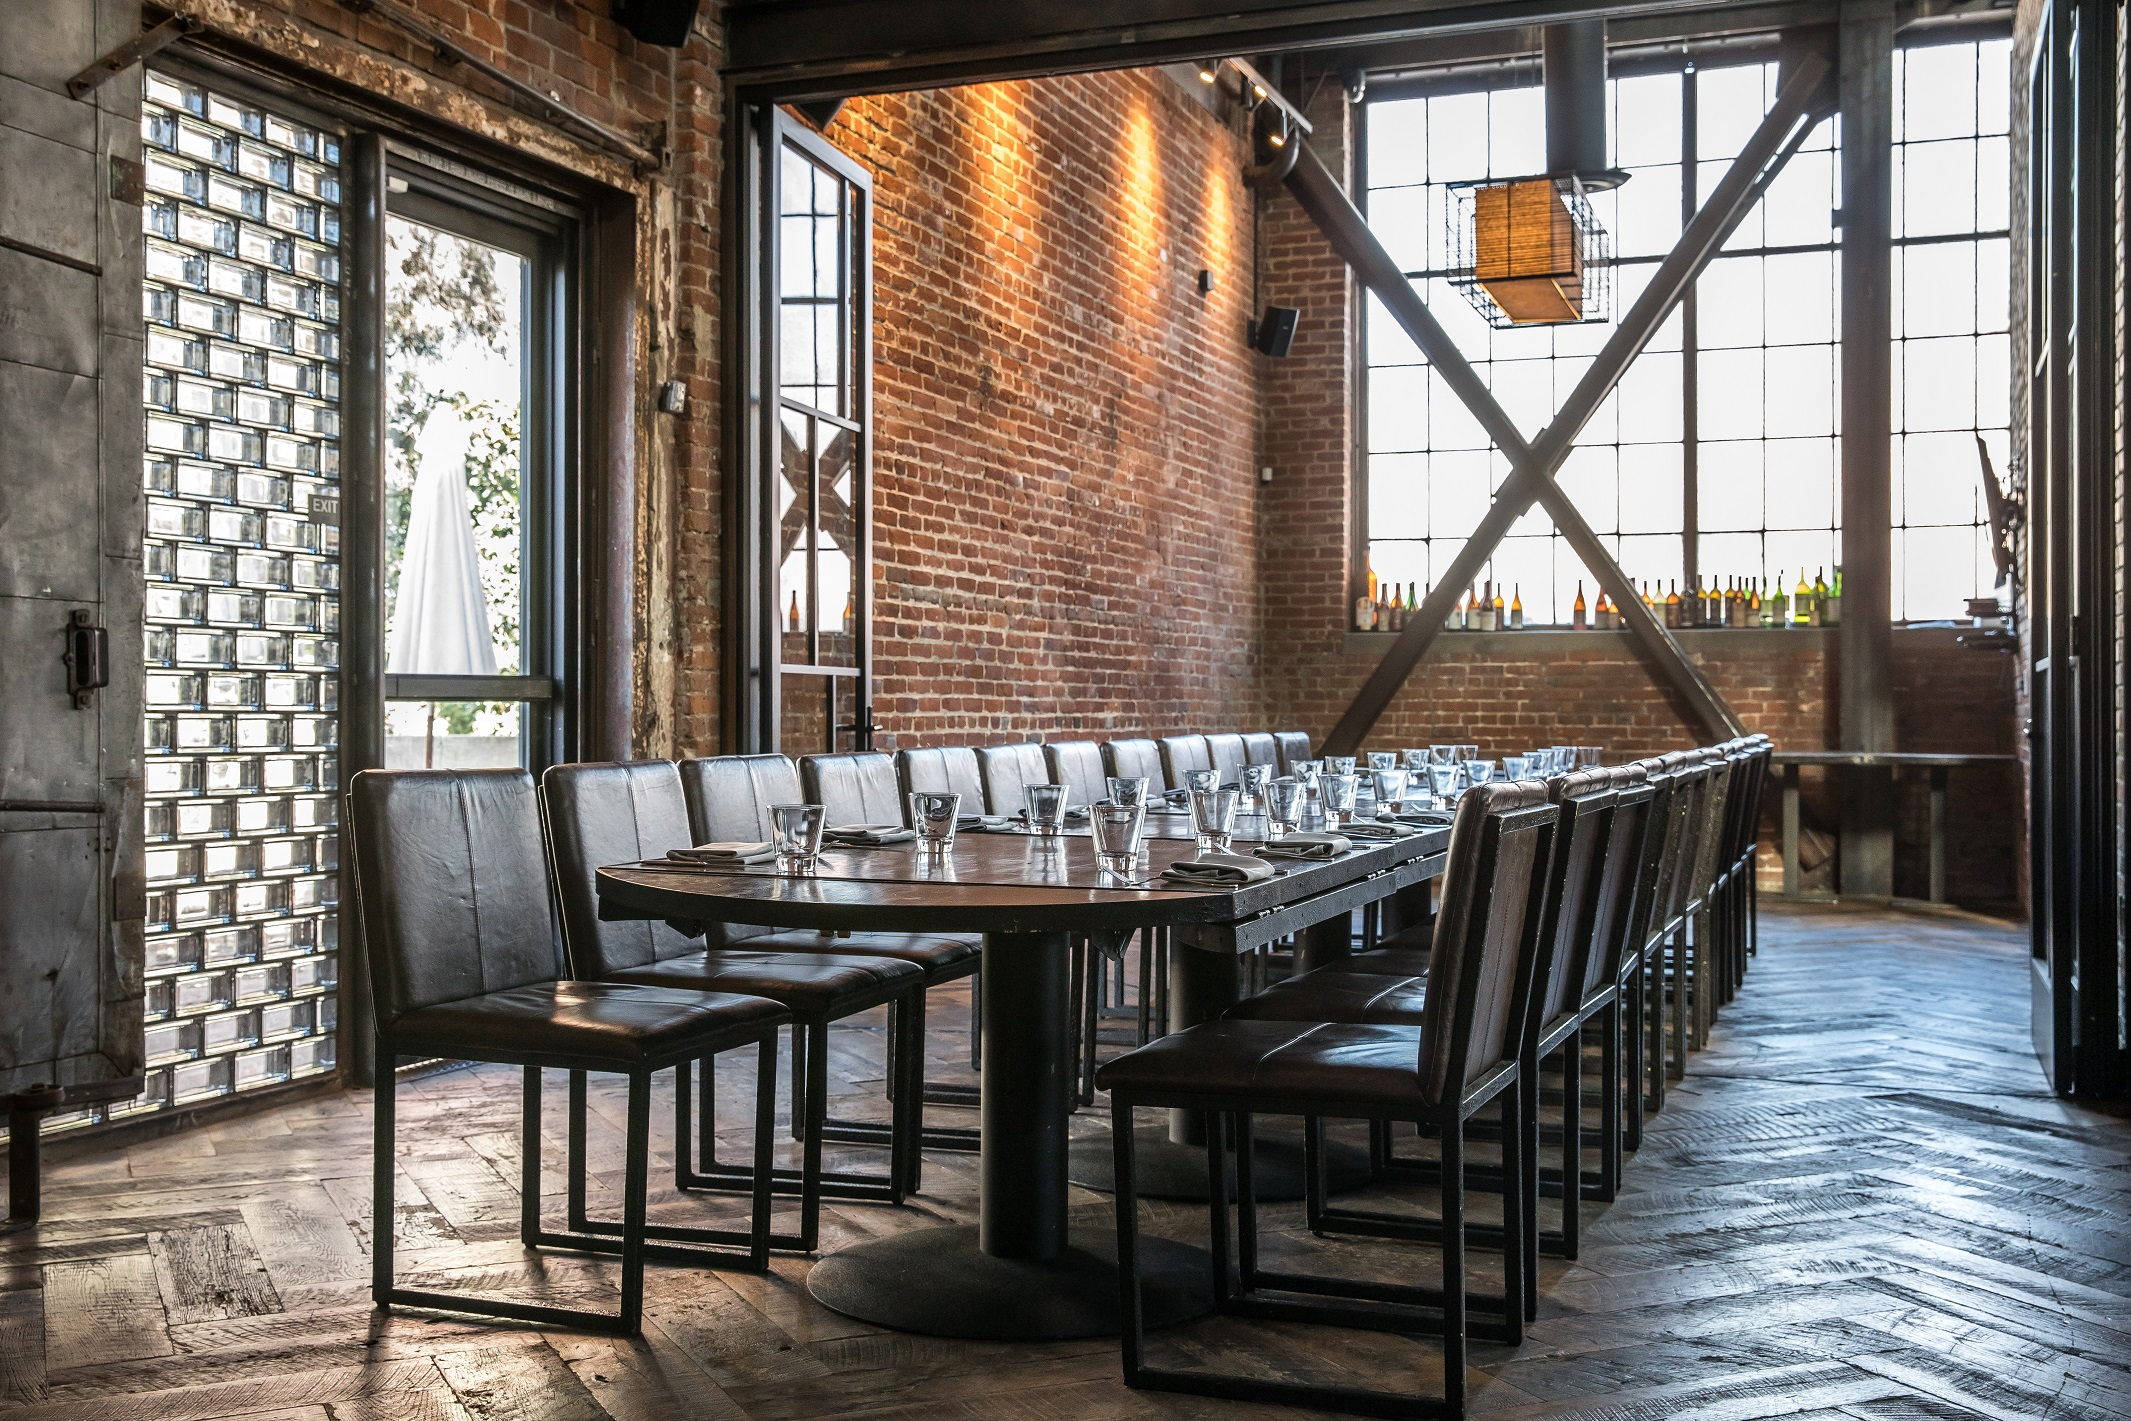 Inside Brera restaurant, industrial style, properly set dining table and comfortable leather chairs waiting to receive guests